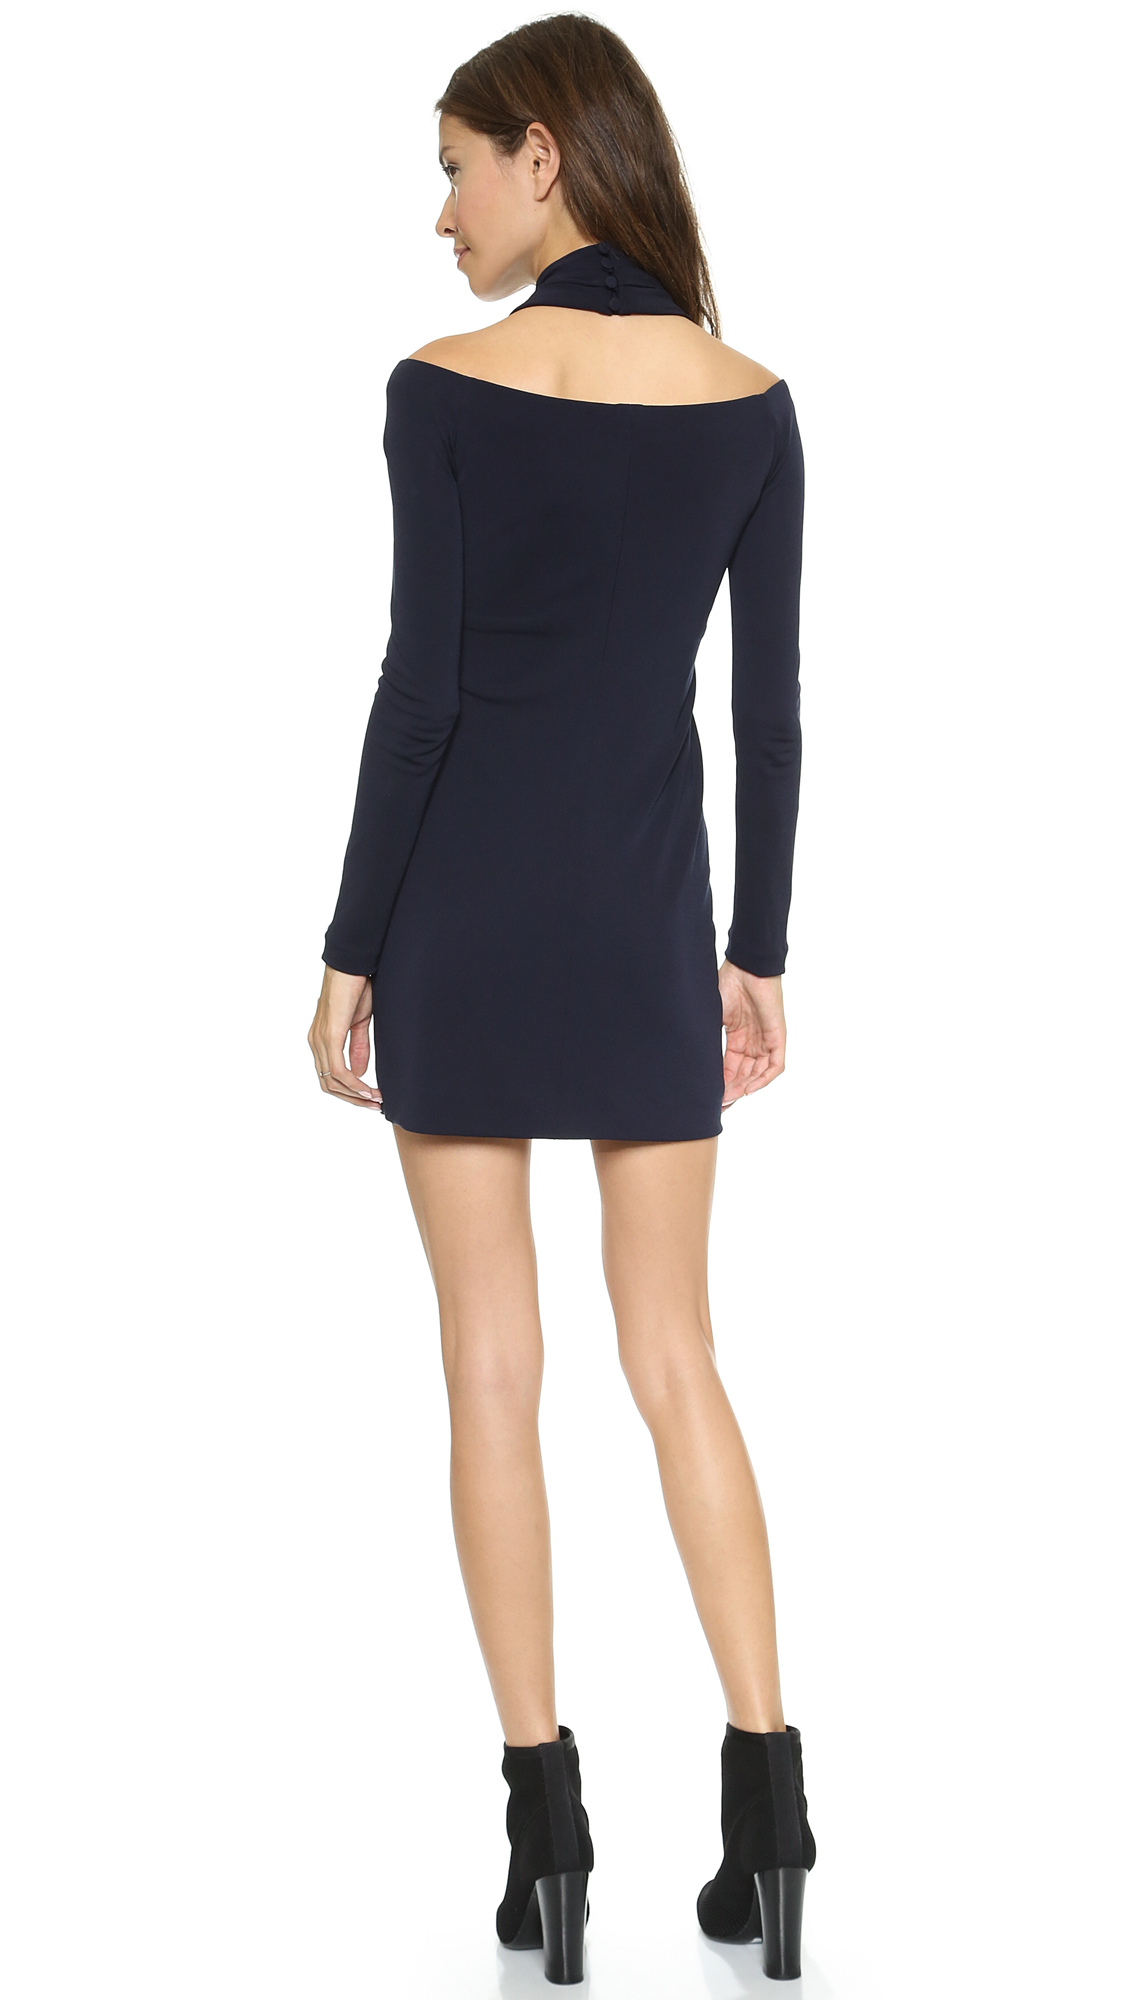 Lyst - Alexander Wang Long Sleeve Shoulderless Dress Marine in Blue